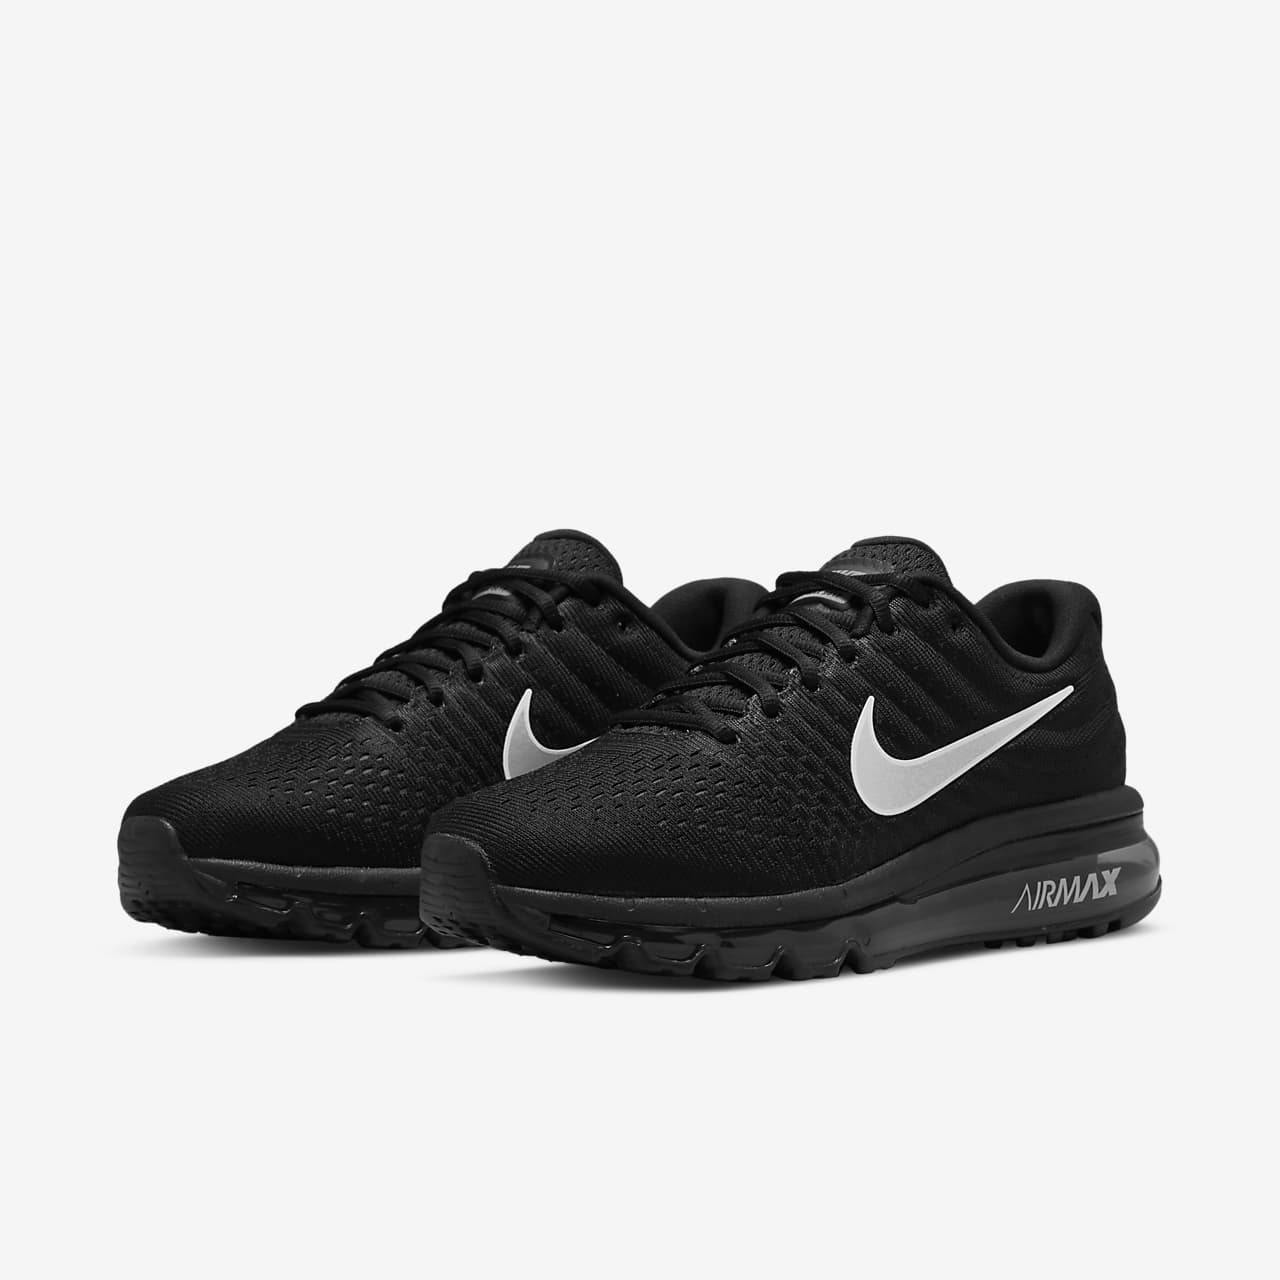 separation shoes 4f0e2 f4f85 ... Nike Air Max 2017 Women s Shoe